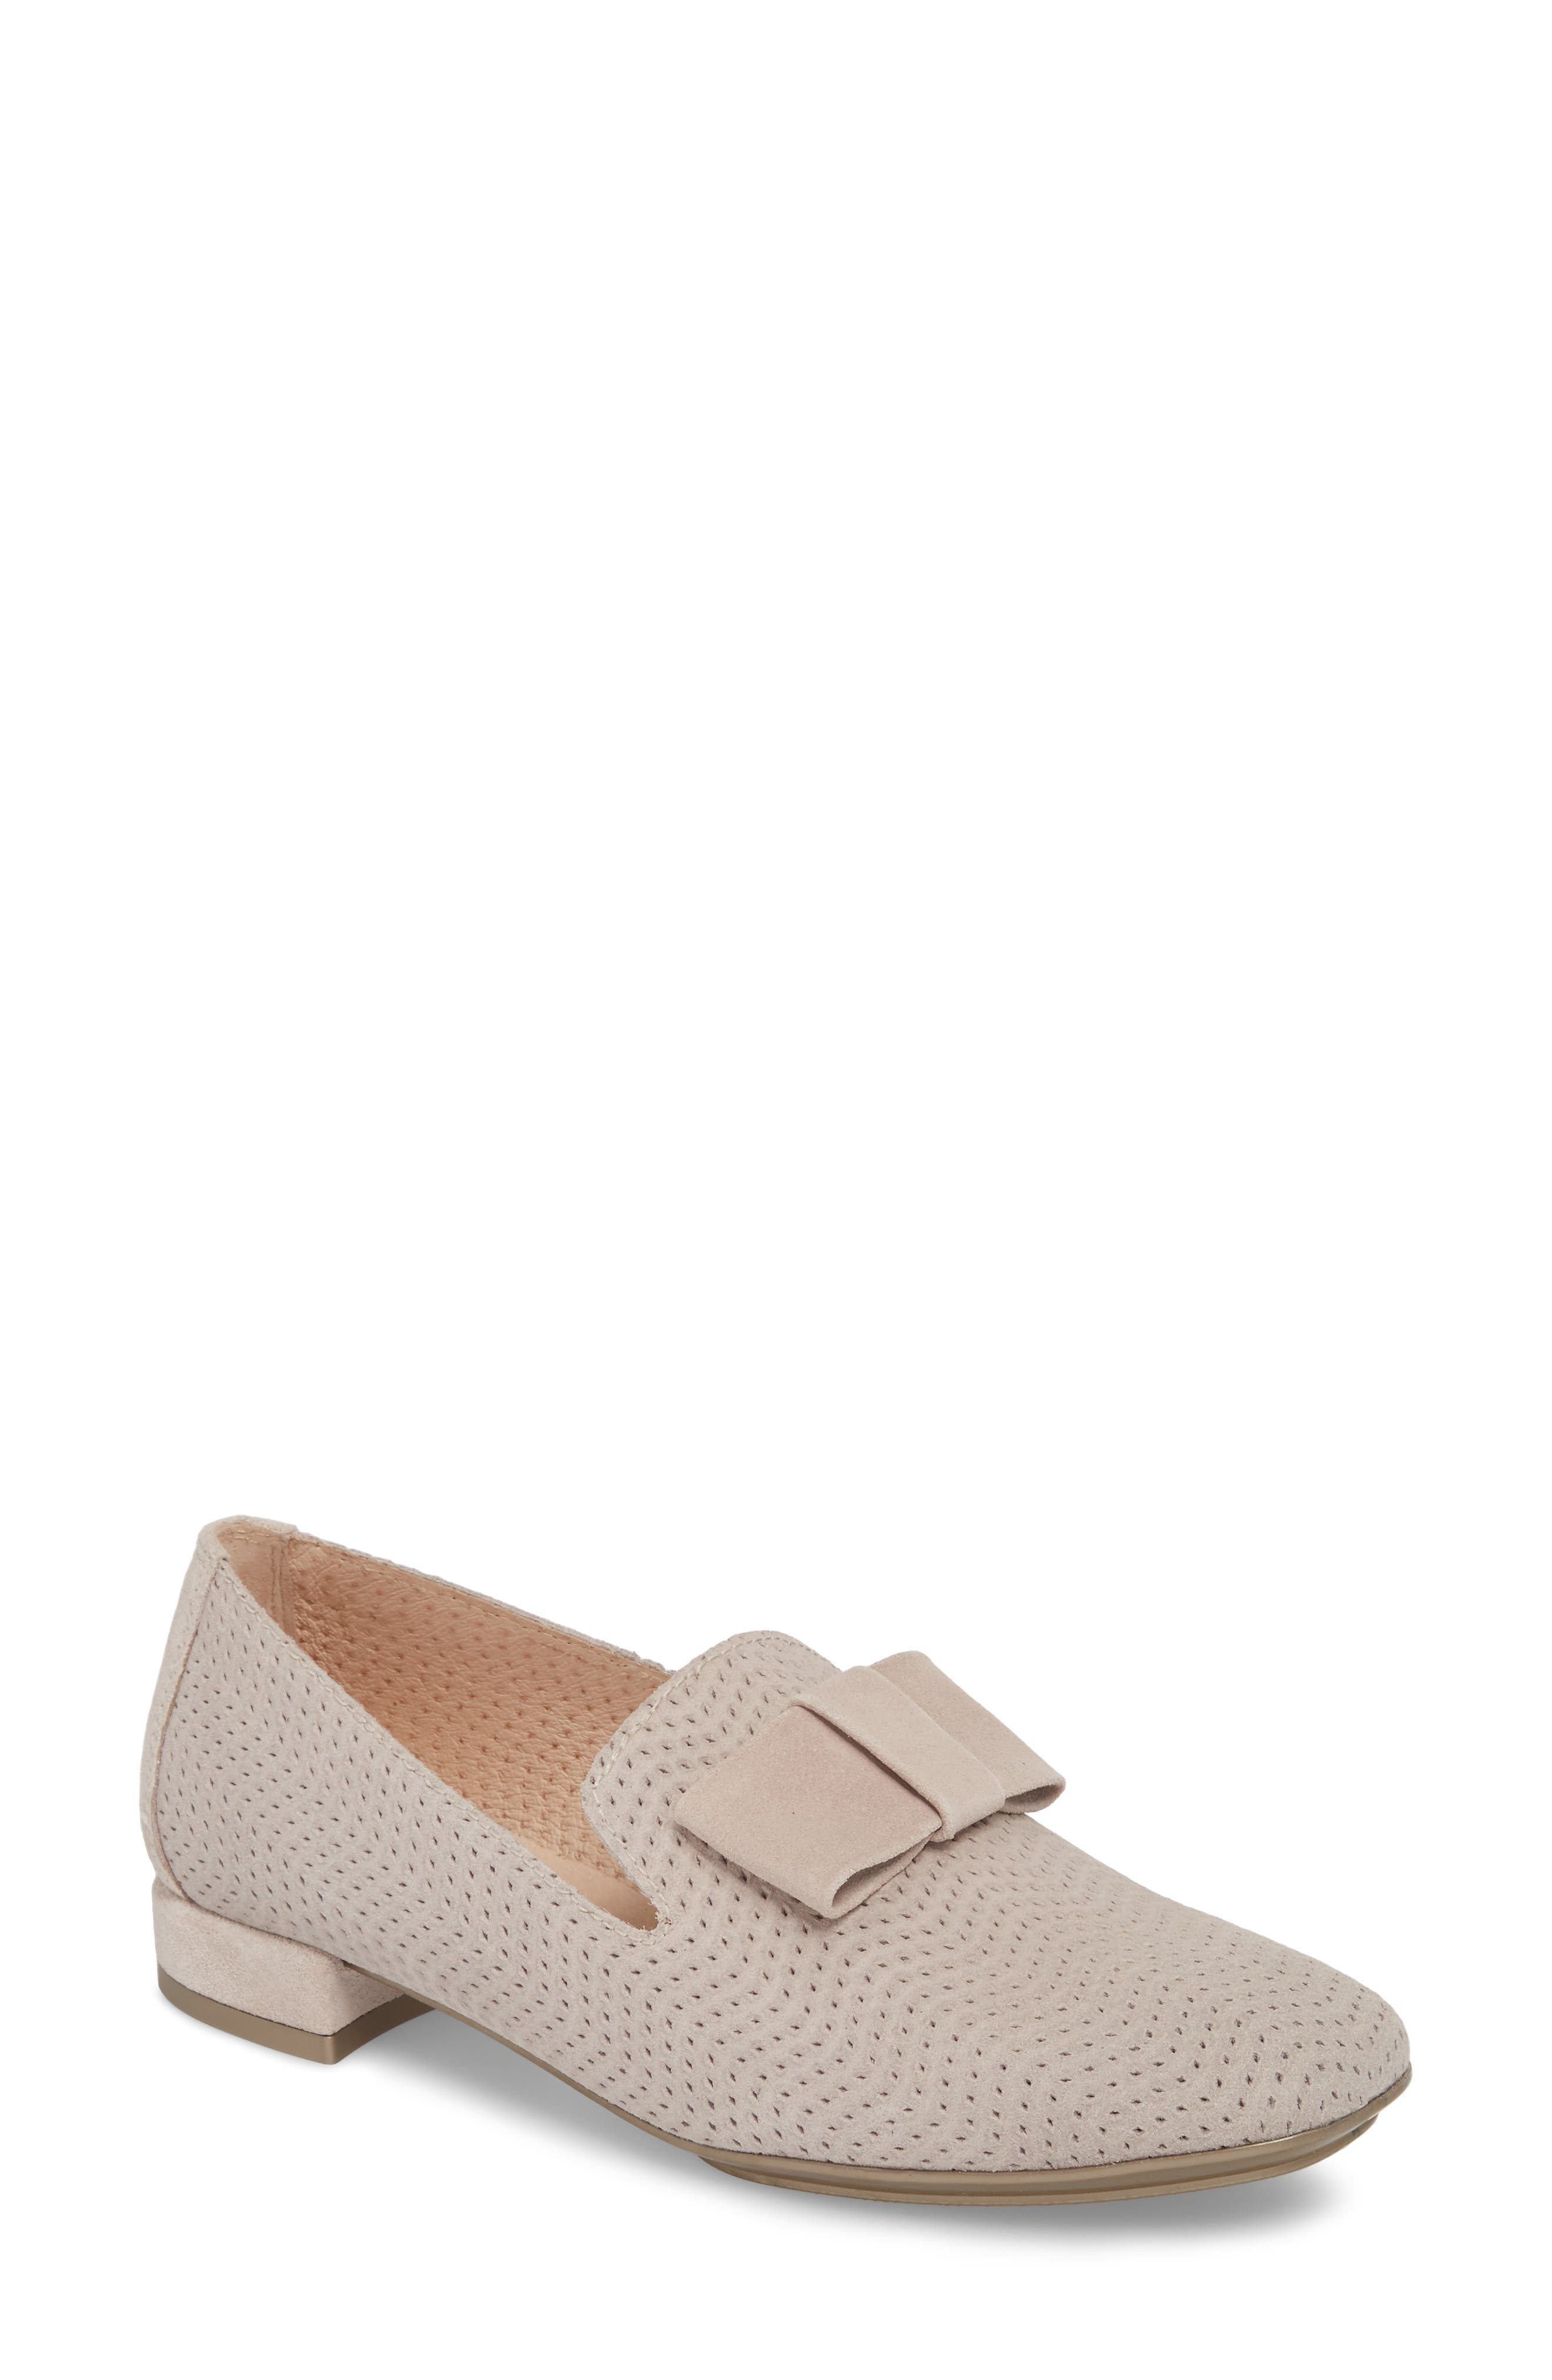 Isolynn Loafer,                         Main,                         color, 250